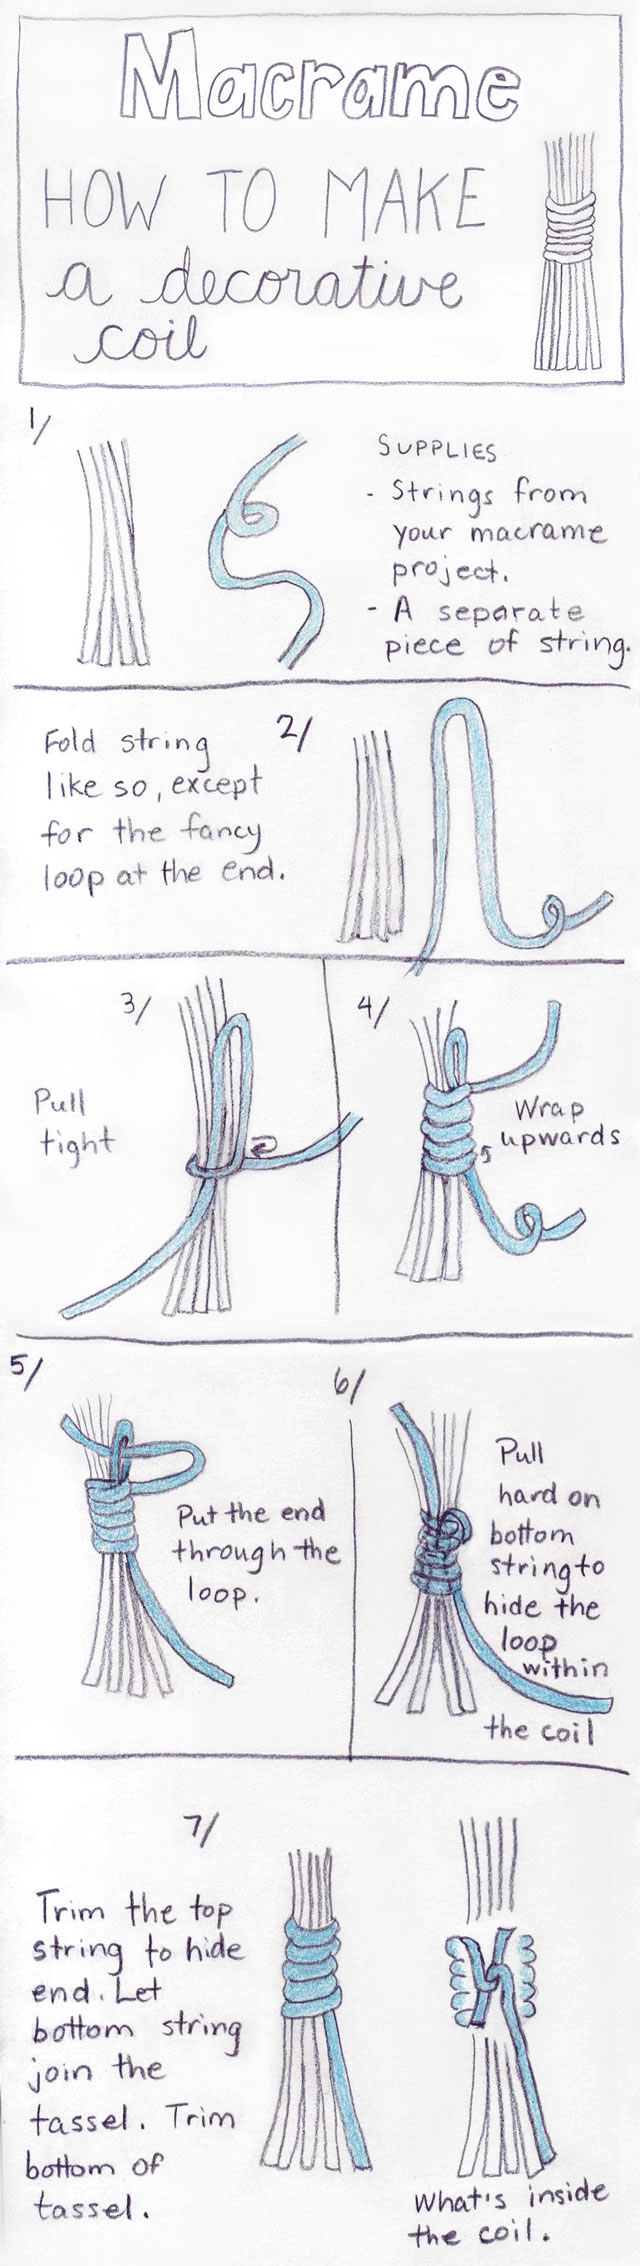 diy macrame how-to-make-a-decorative-coil-in-macrame-tassel-loulou-downtown